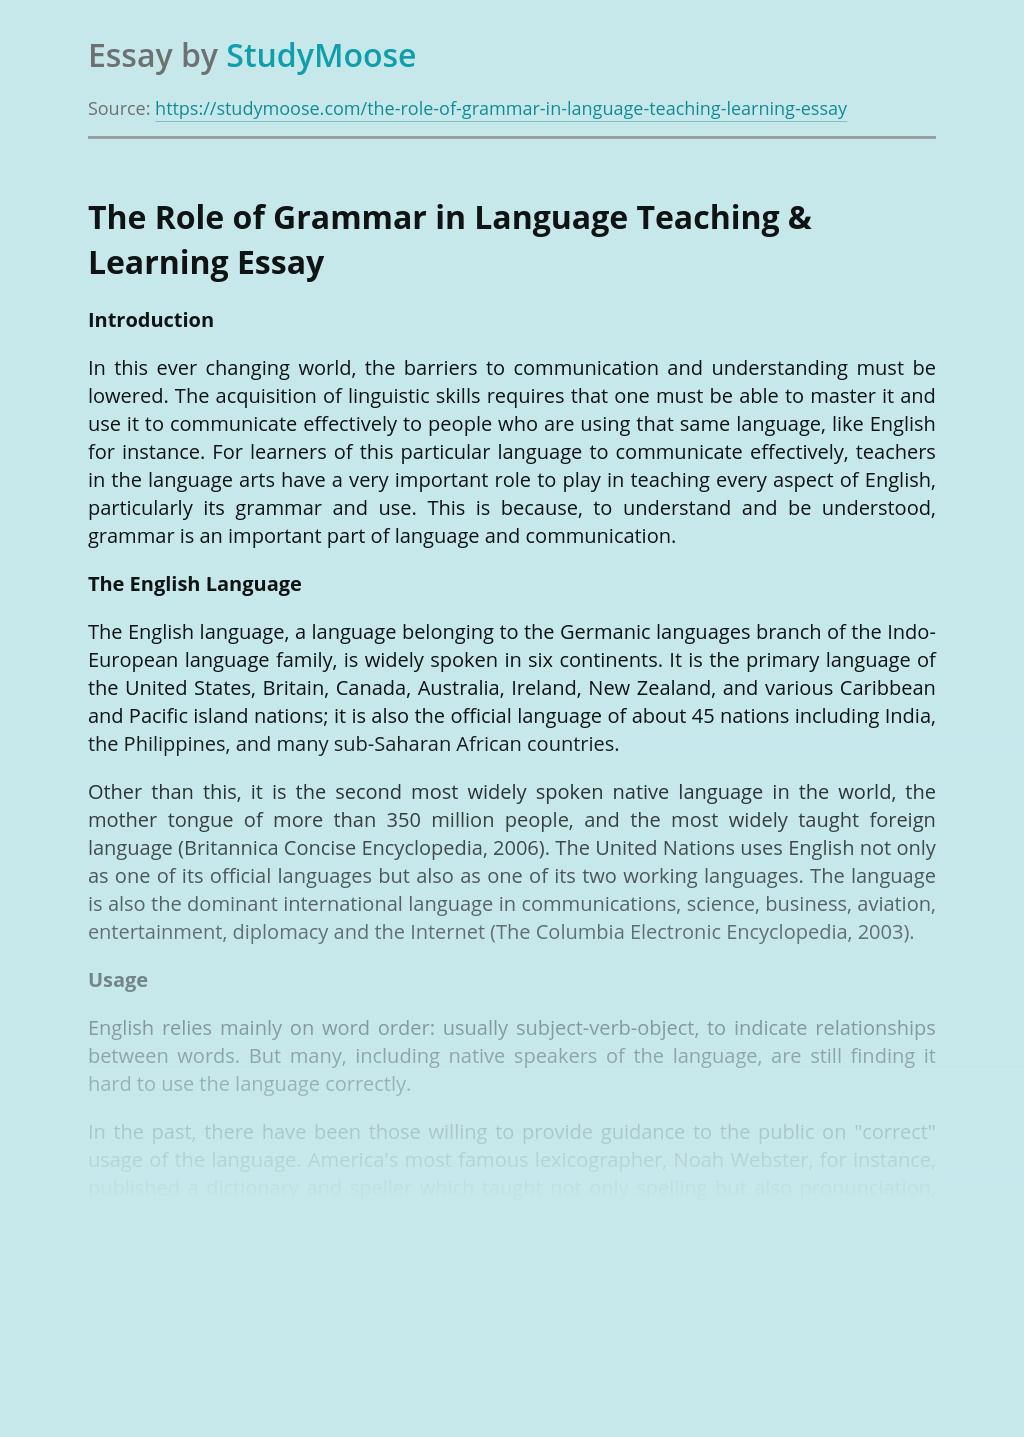 The Role of Grammar in Language Teaching & Learning